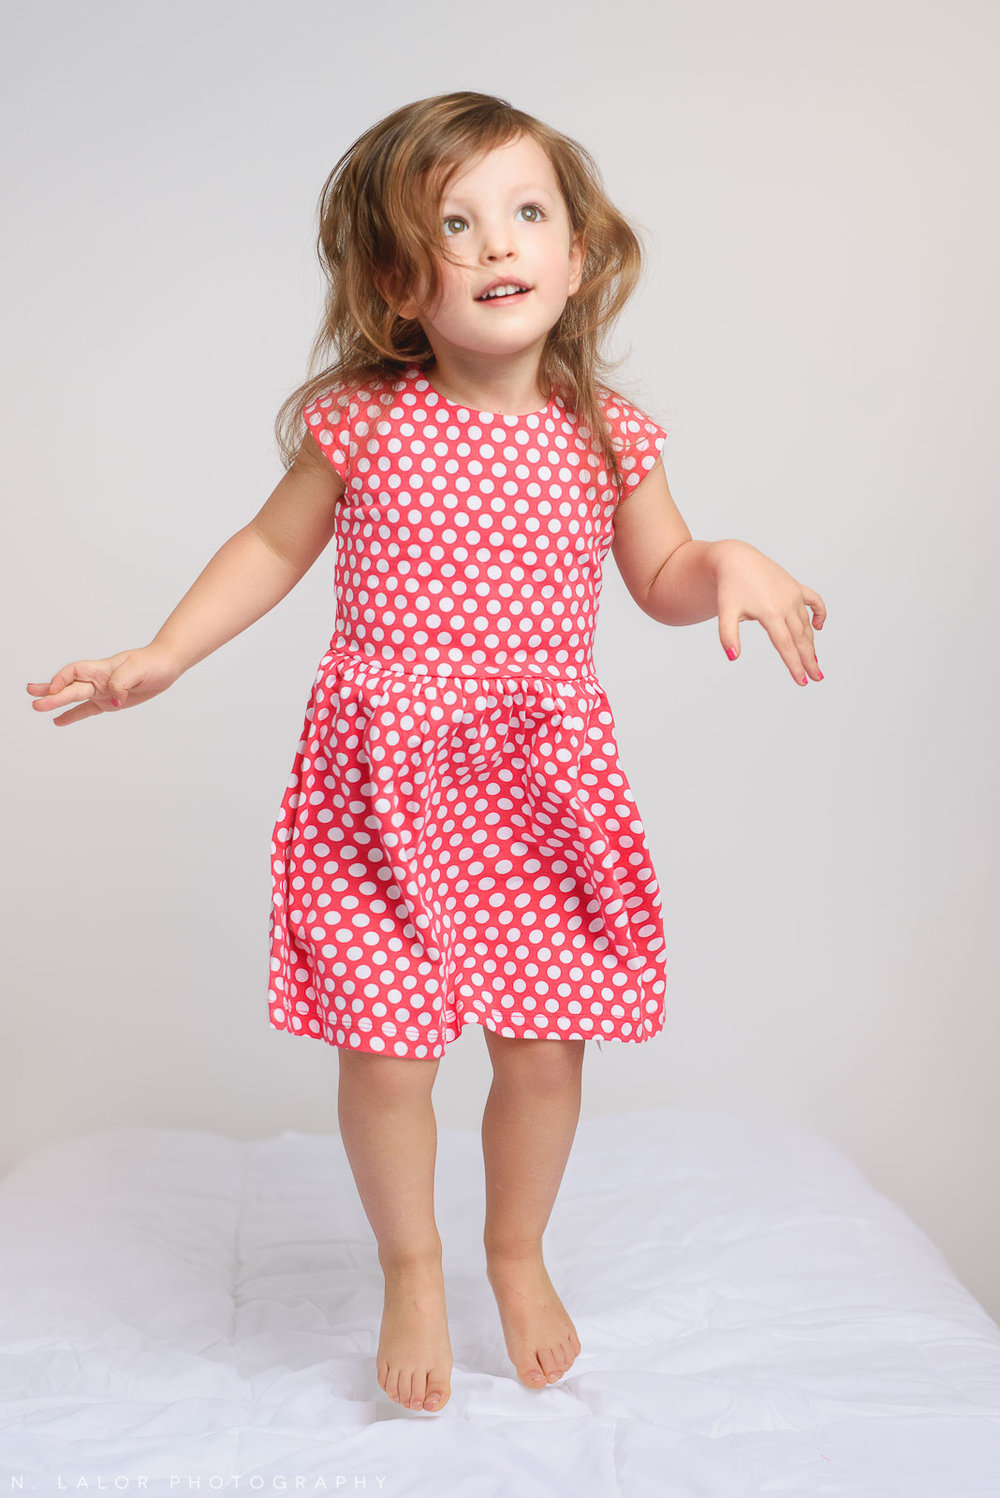 Jumping on the bed, 2 year old girl. Simple studio portrait by N. Lalor Photography in Greenwich, Connecticut.